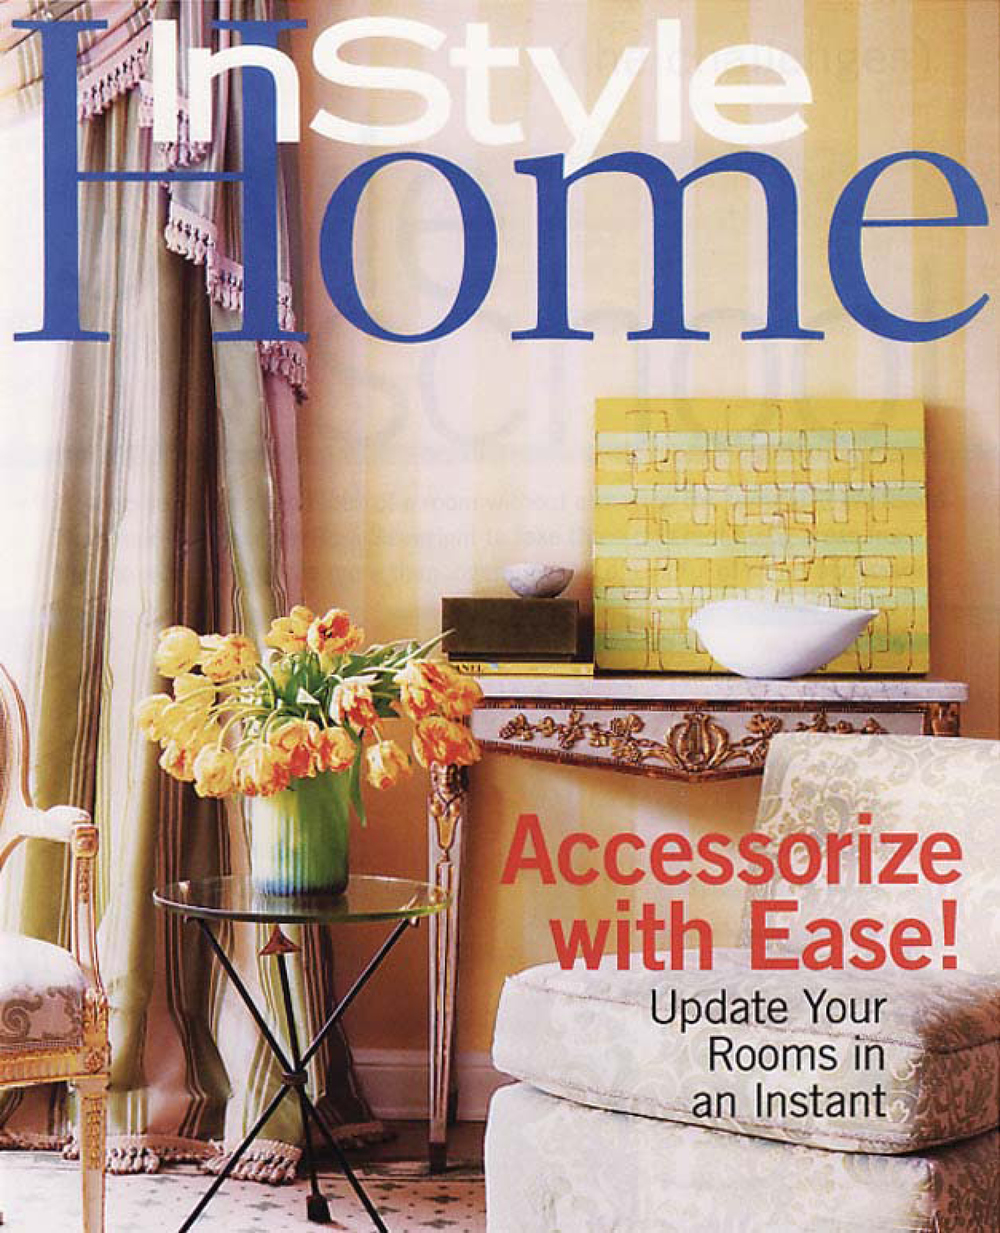 In_Style_Home_2005_Article 1.jpg